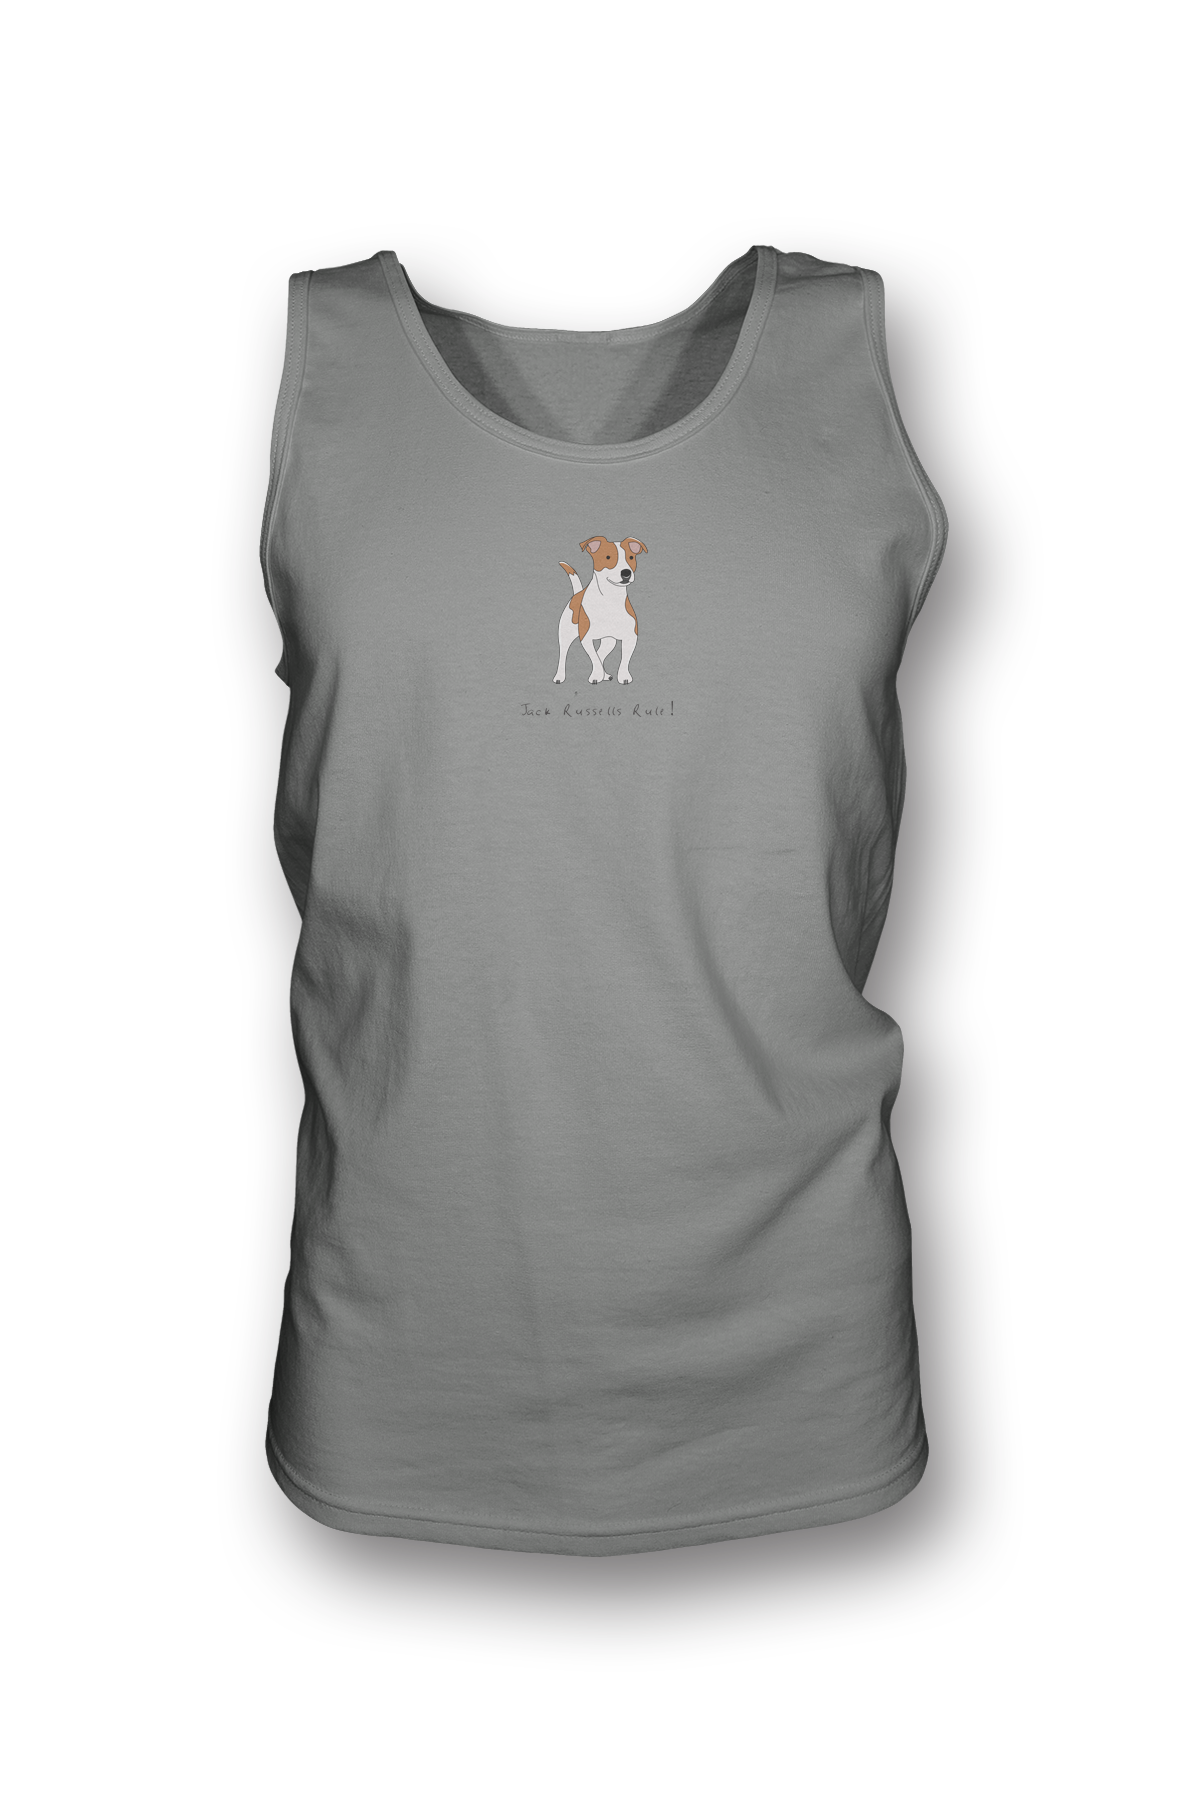 Mens Tank Top T-Shirt - Jack Russells Rule! Heather Grey